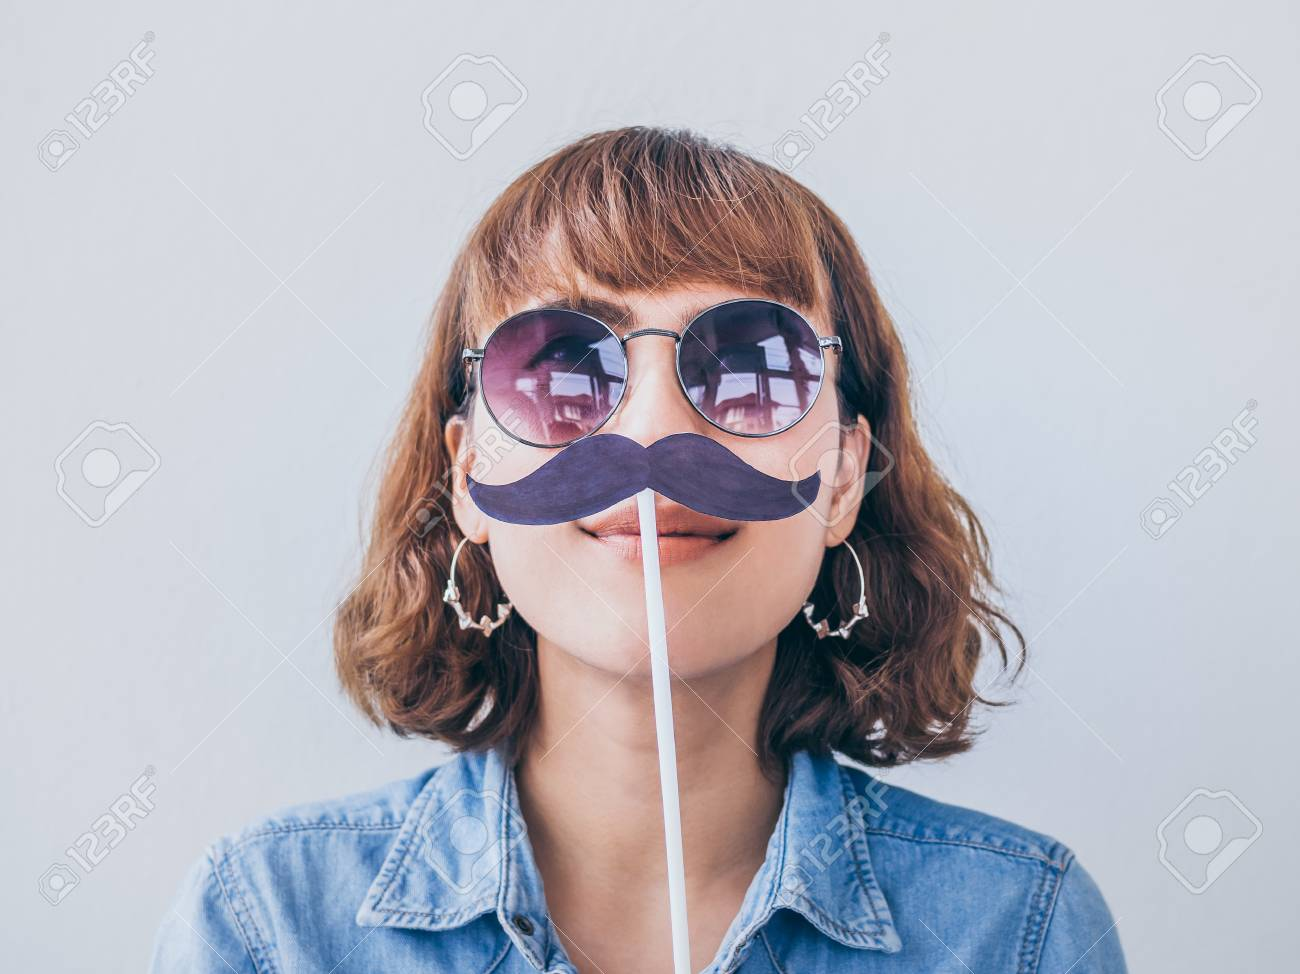 fe4acc886d Beautiful asian woman short hair wearing blue jeans shirt and sunglasses  smiling with fake mustache isolated